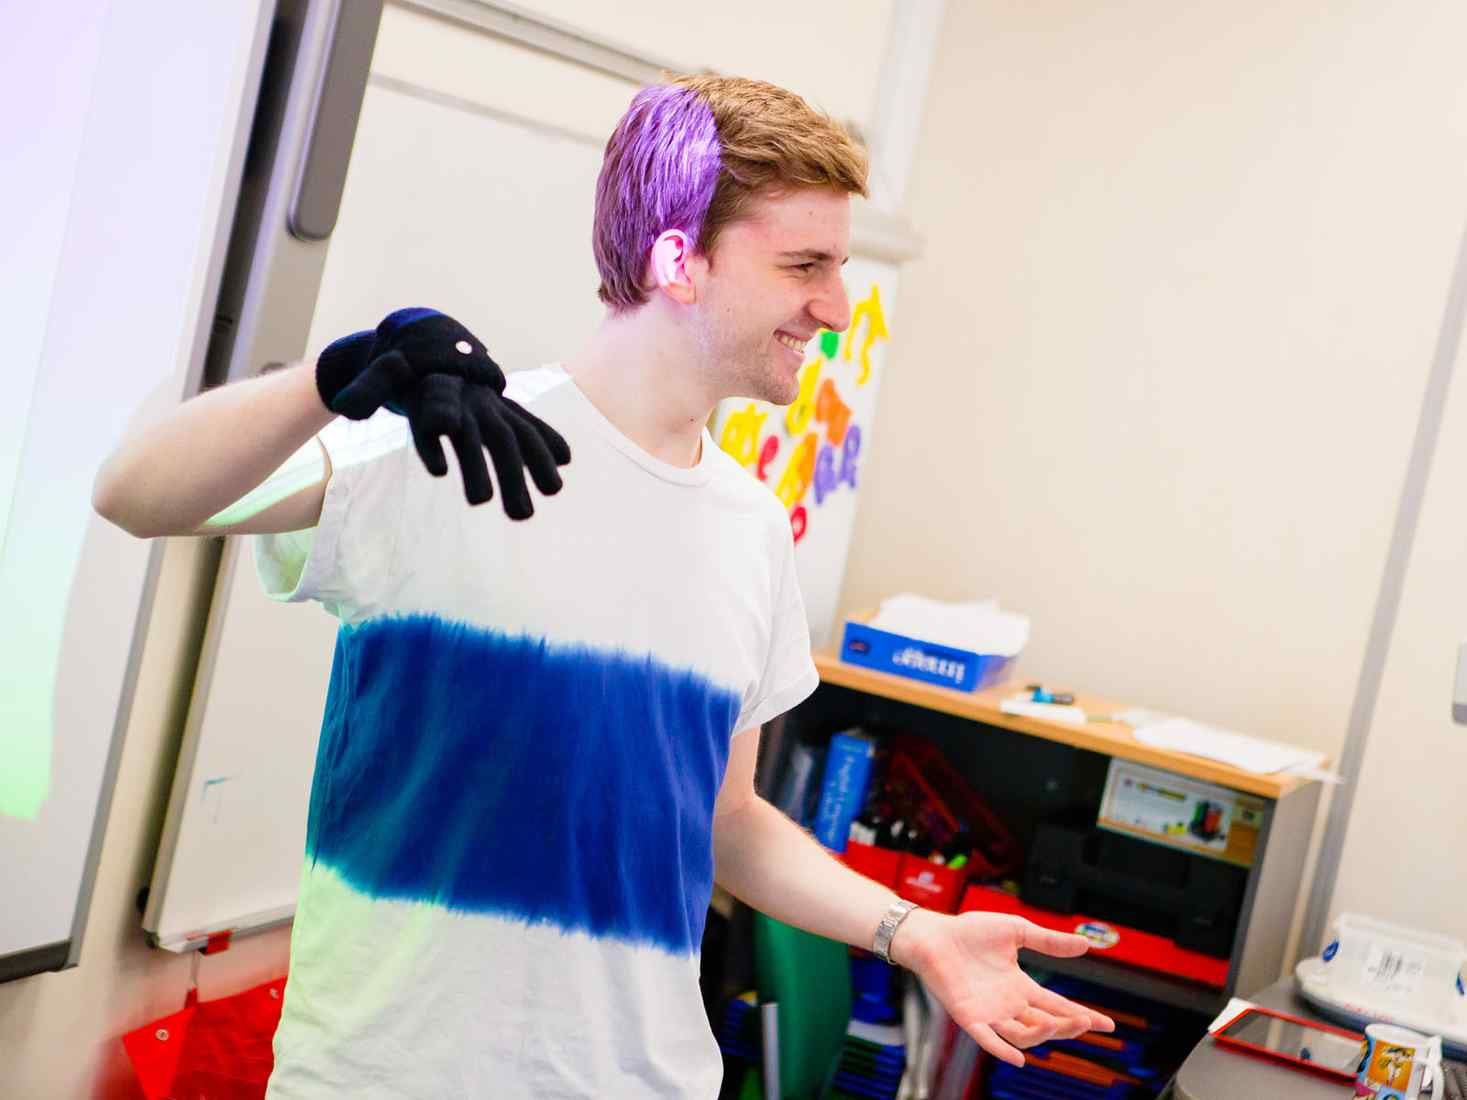 Student using hand puppet